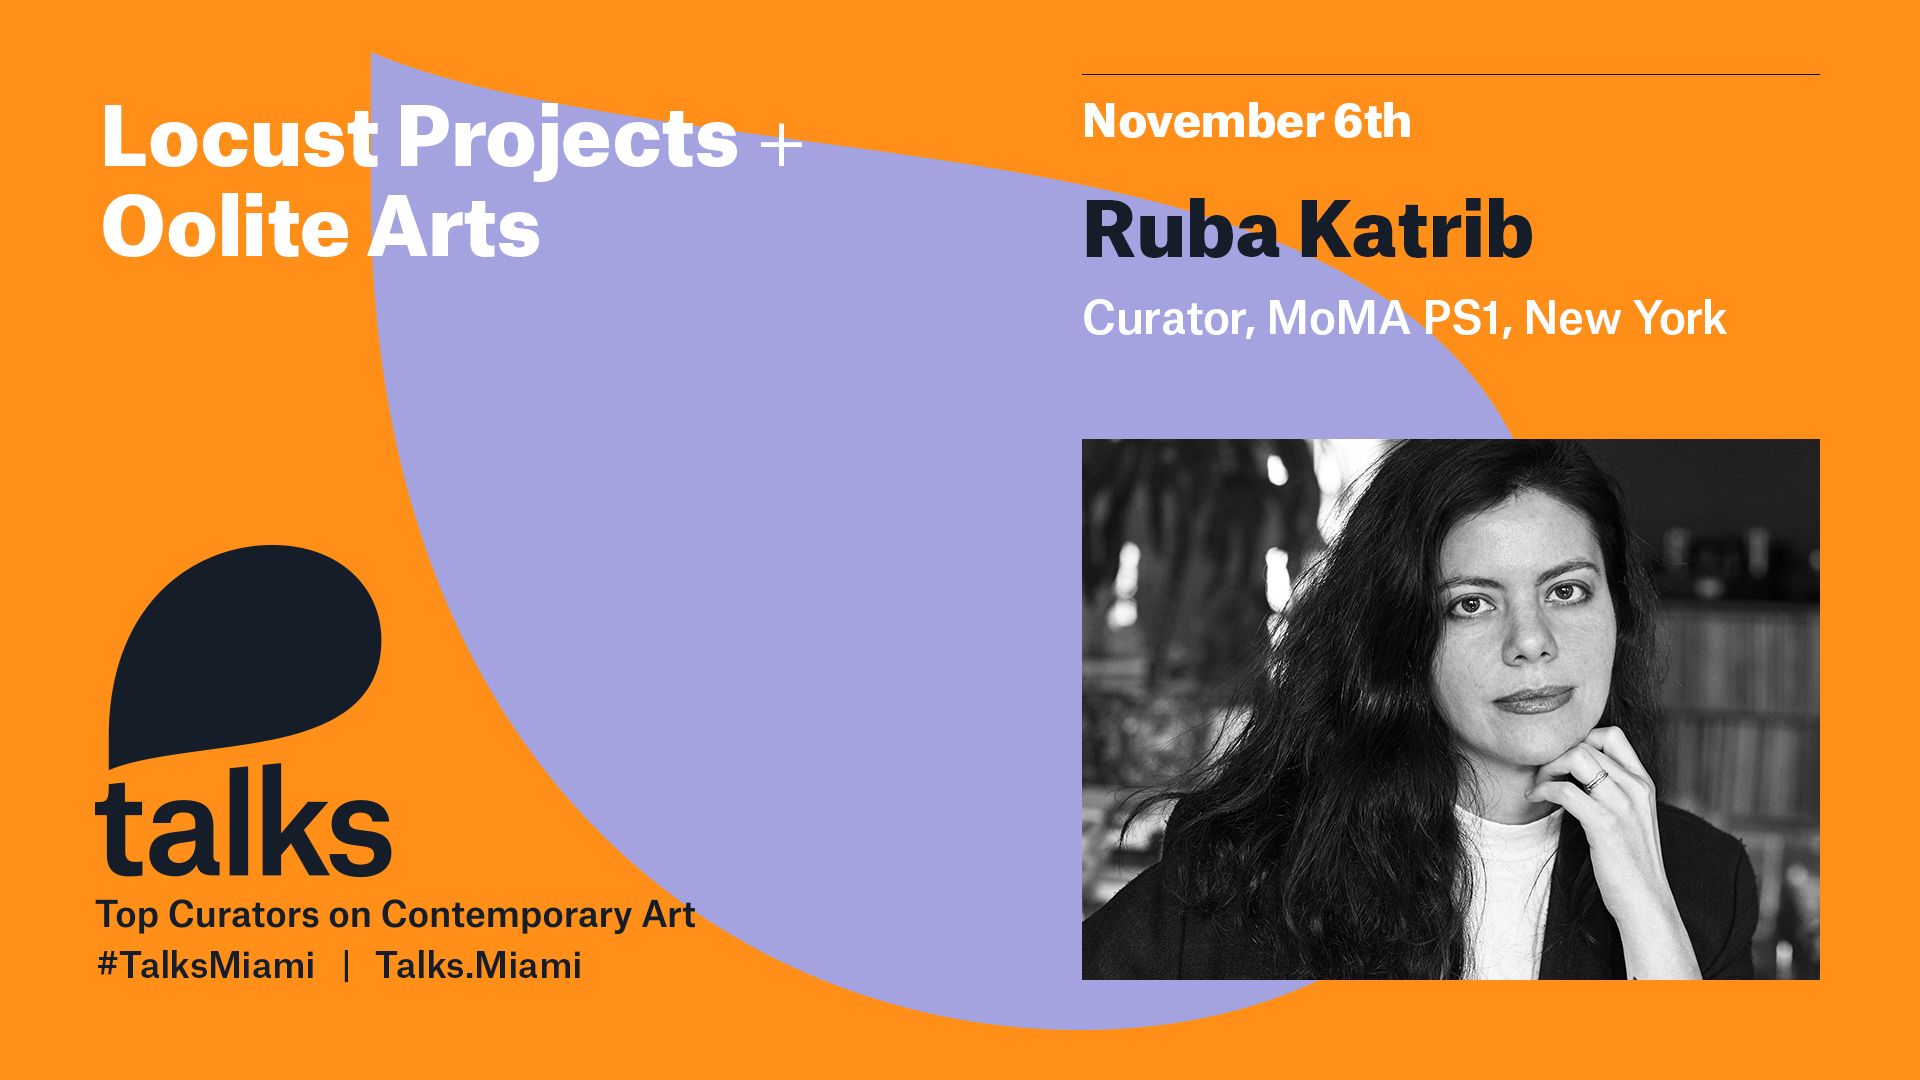 Register now for Talks with Ruba Katrib